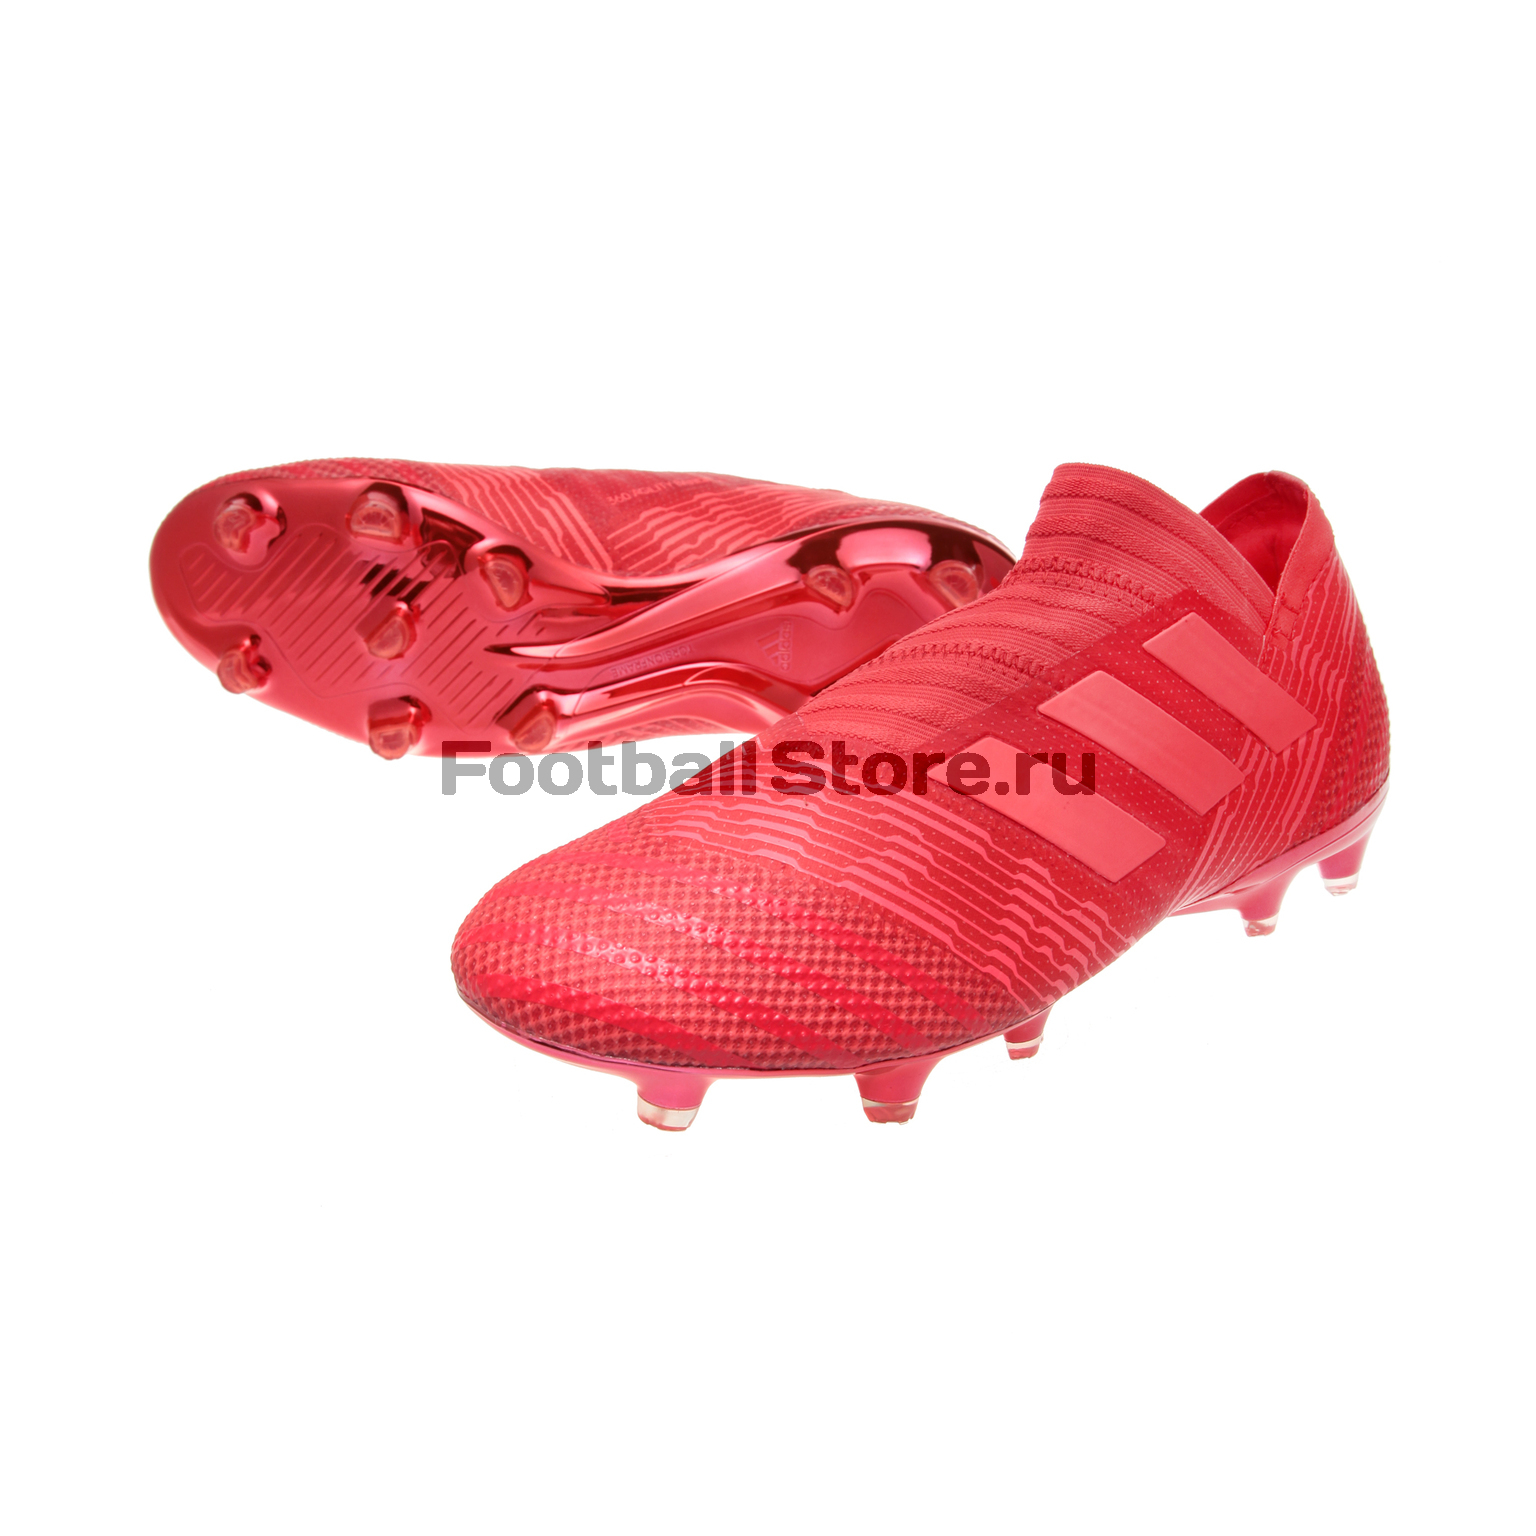 Игровые бутсы Adidas Бутсы Adidas Nemeziz 17+ FG CM7731 the art of not breathing